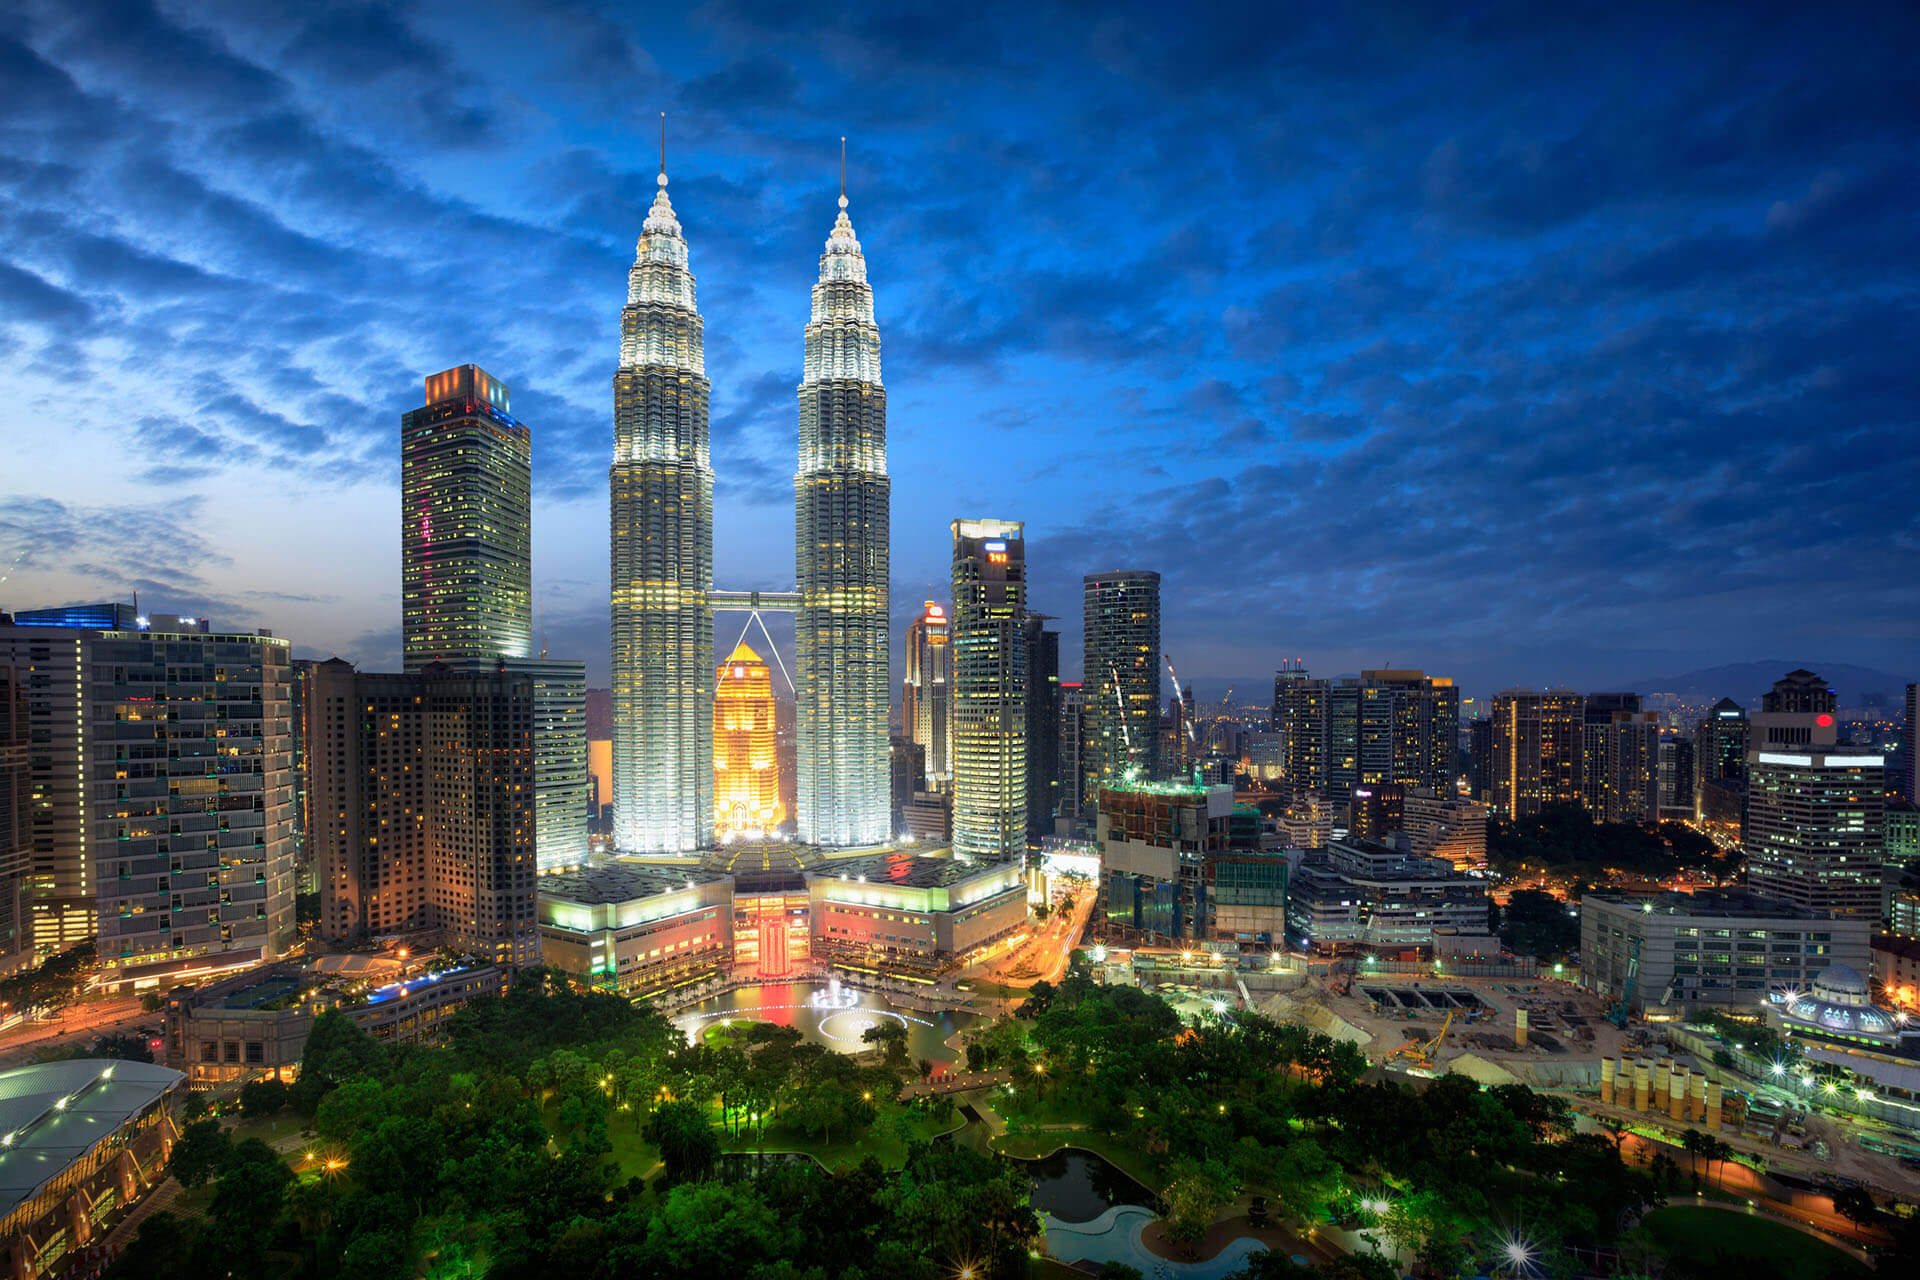 Malaysia: Home Quarantine Application Moved to Online Portal